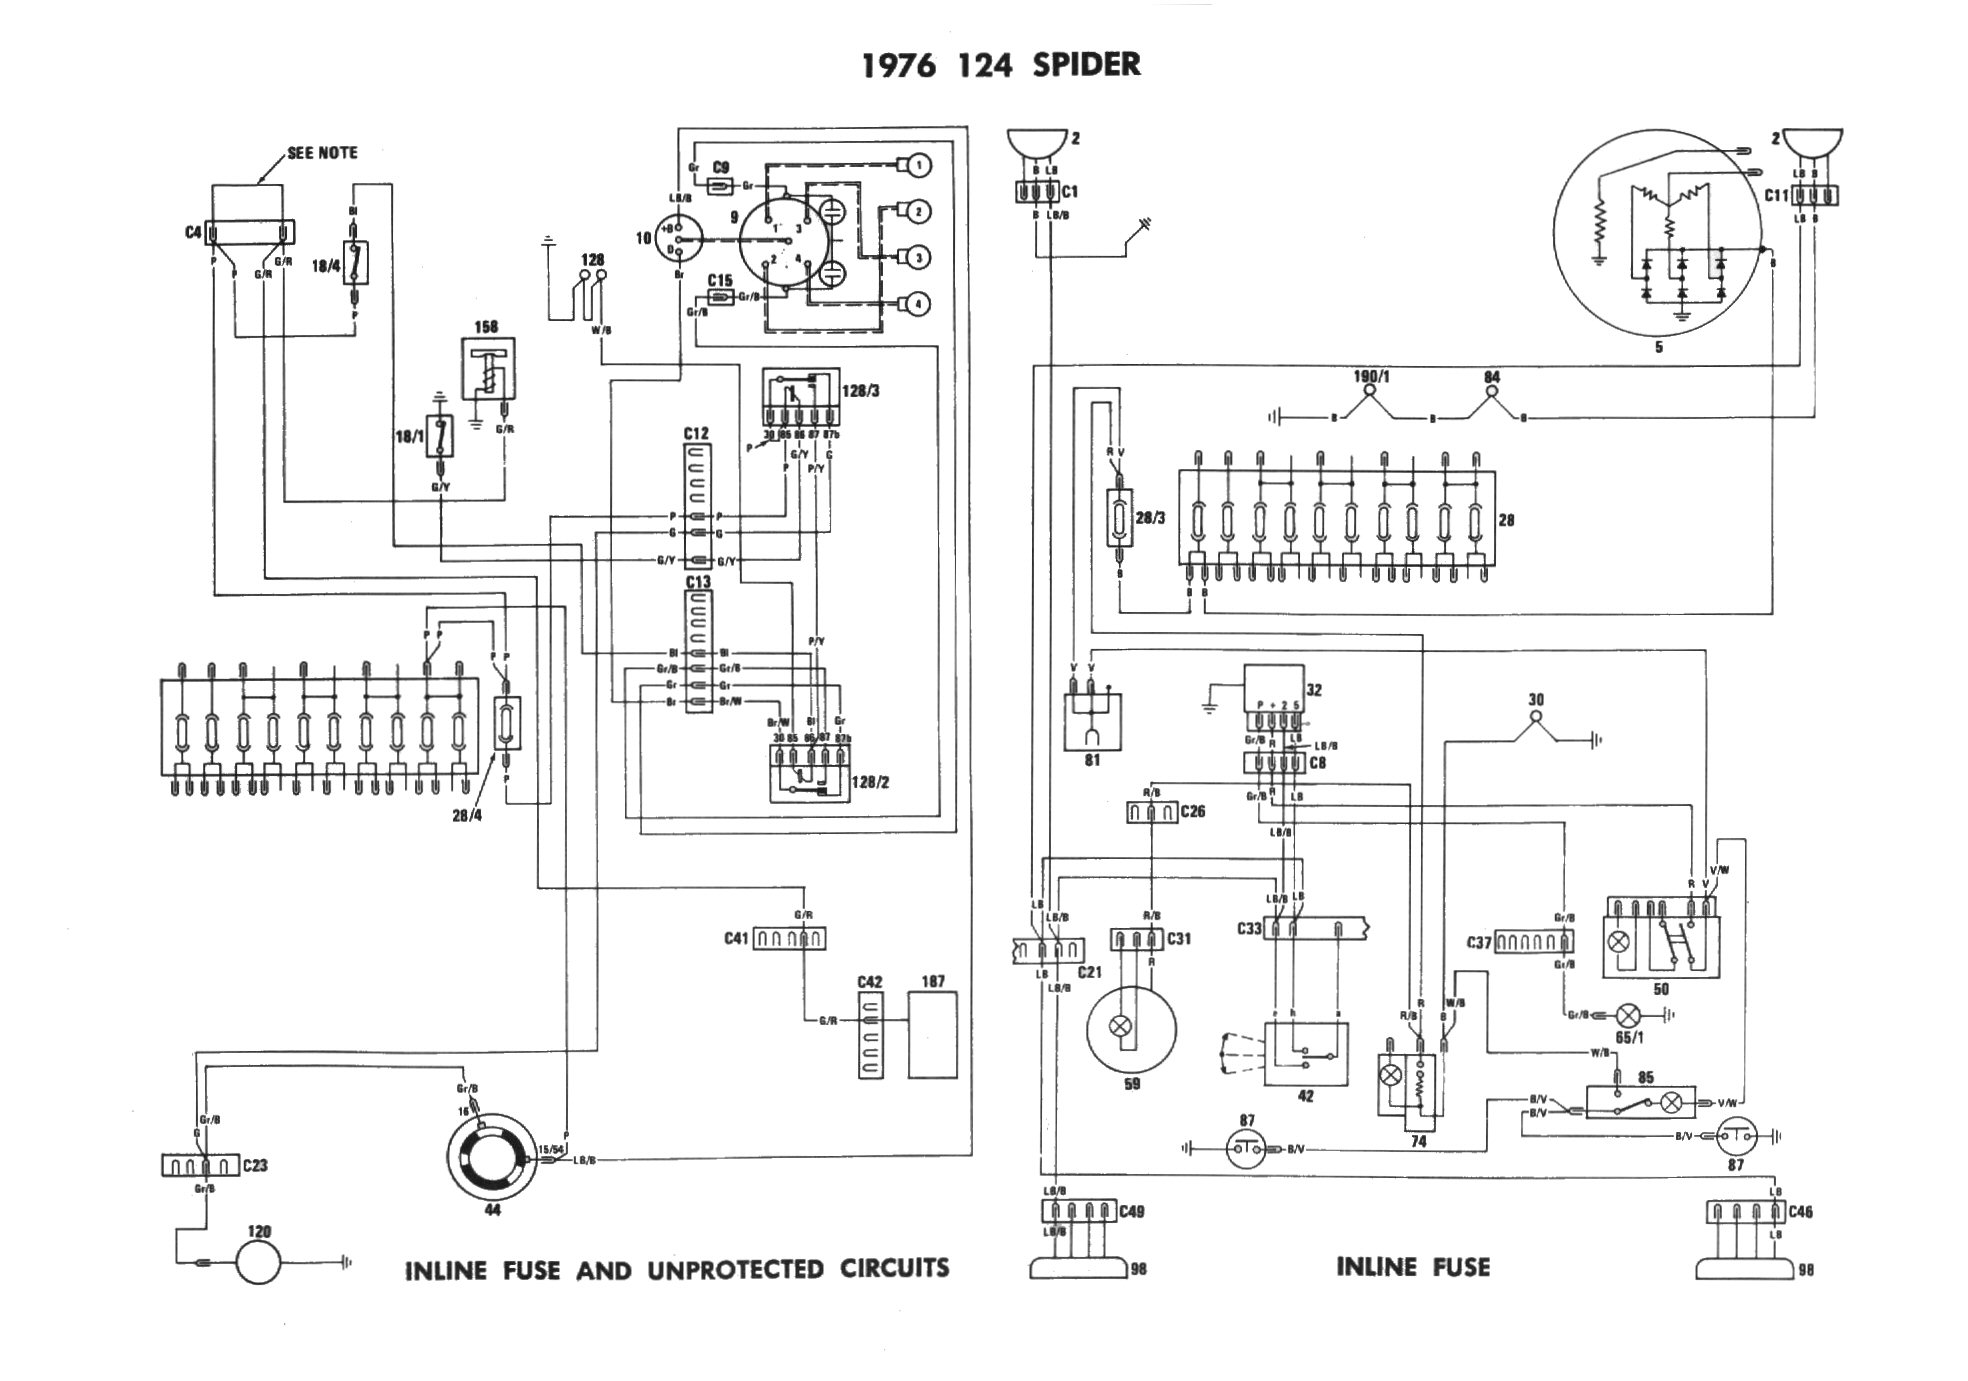 7 1976 corvette wiring diagram efcaviation com 1979 corvette wiring diagram at n-0.co